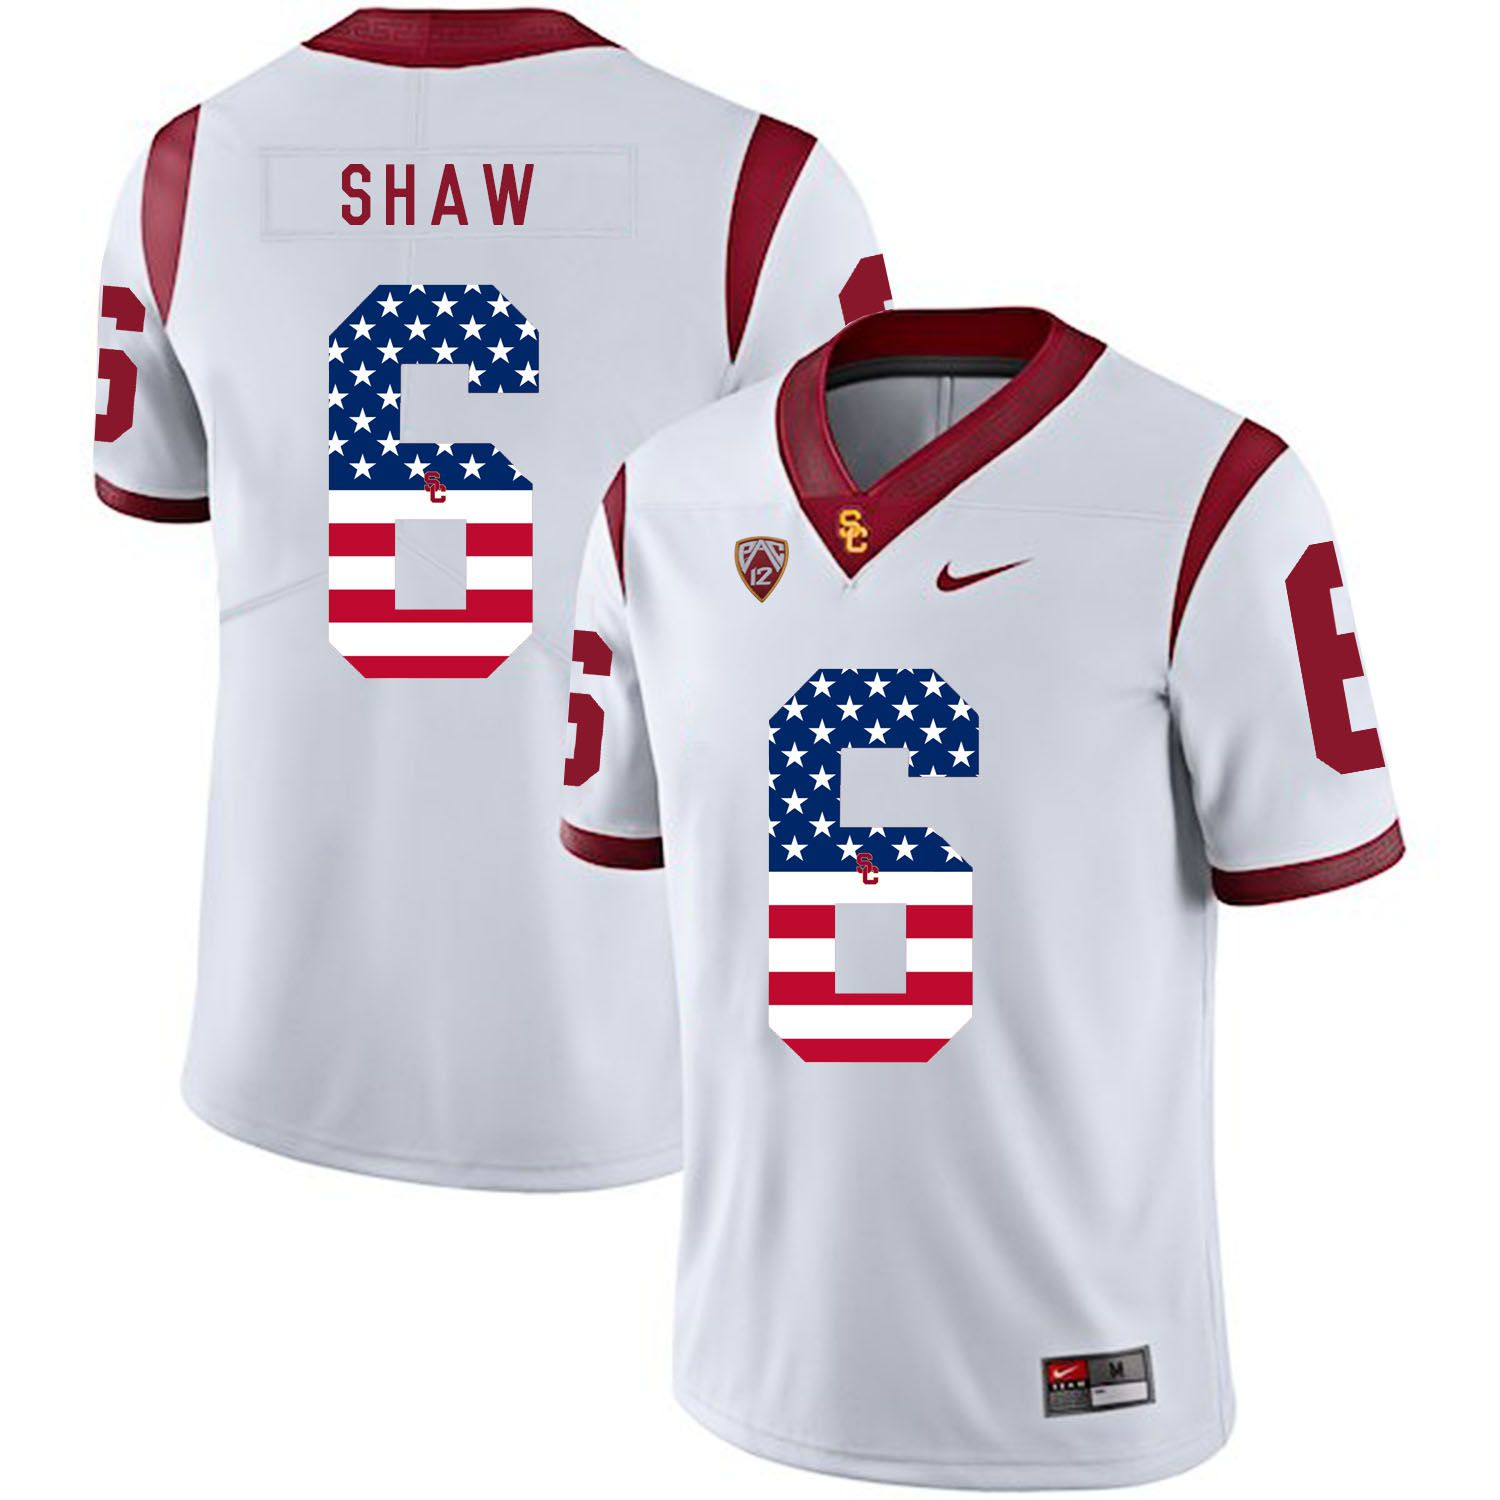 Men USC Trojans 6 Shaw White Flag Customized NCAA Jerseys